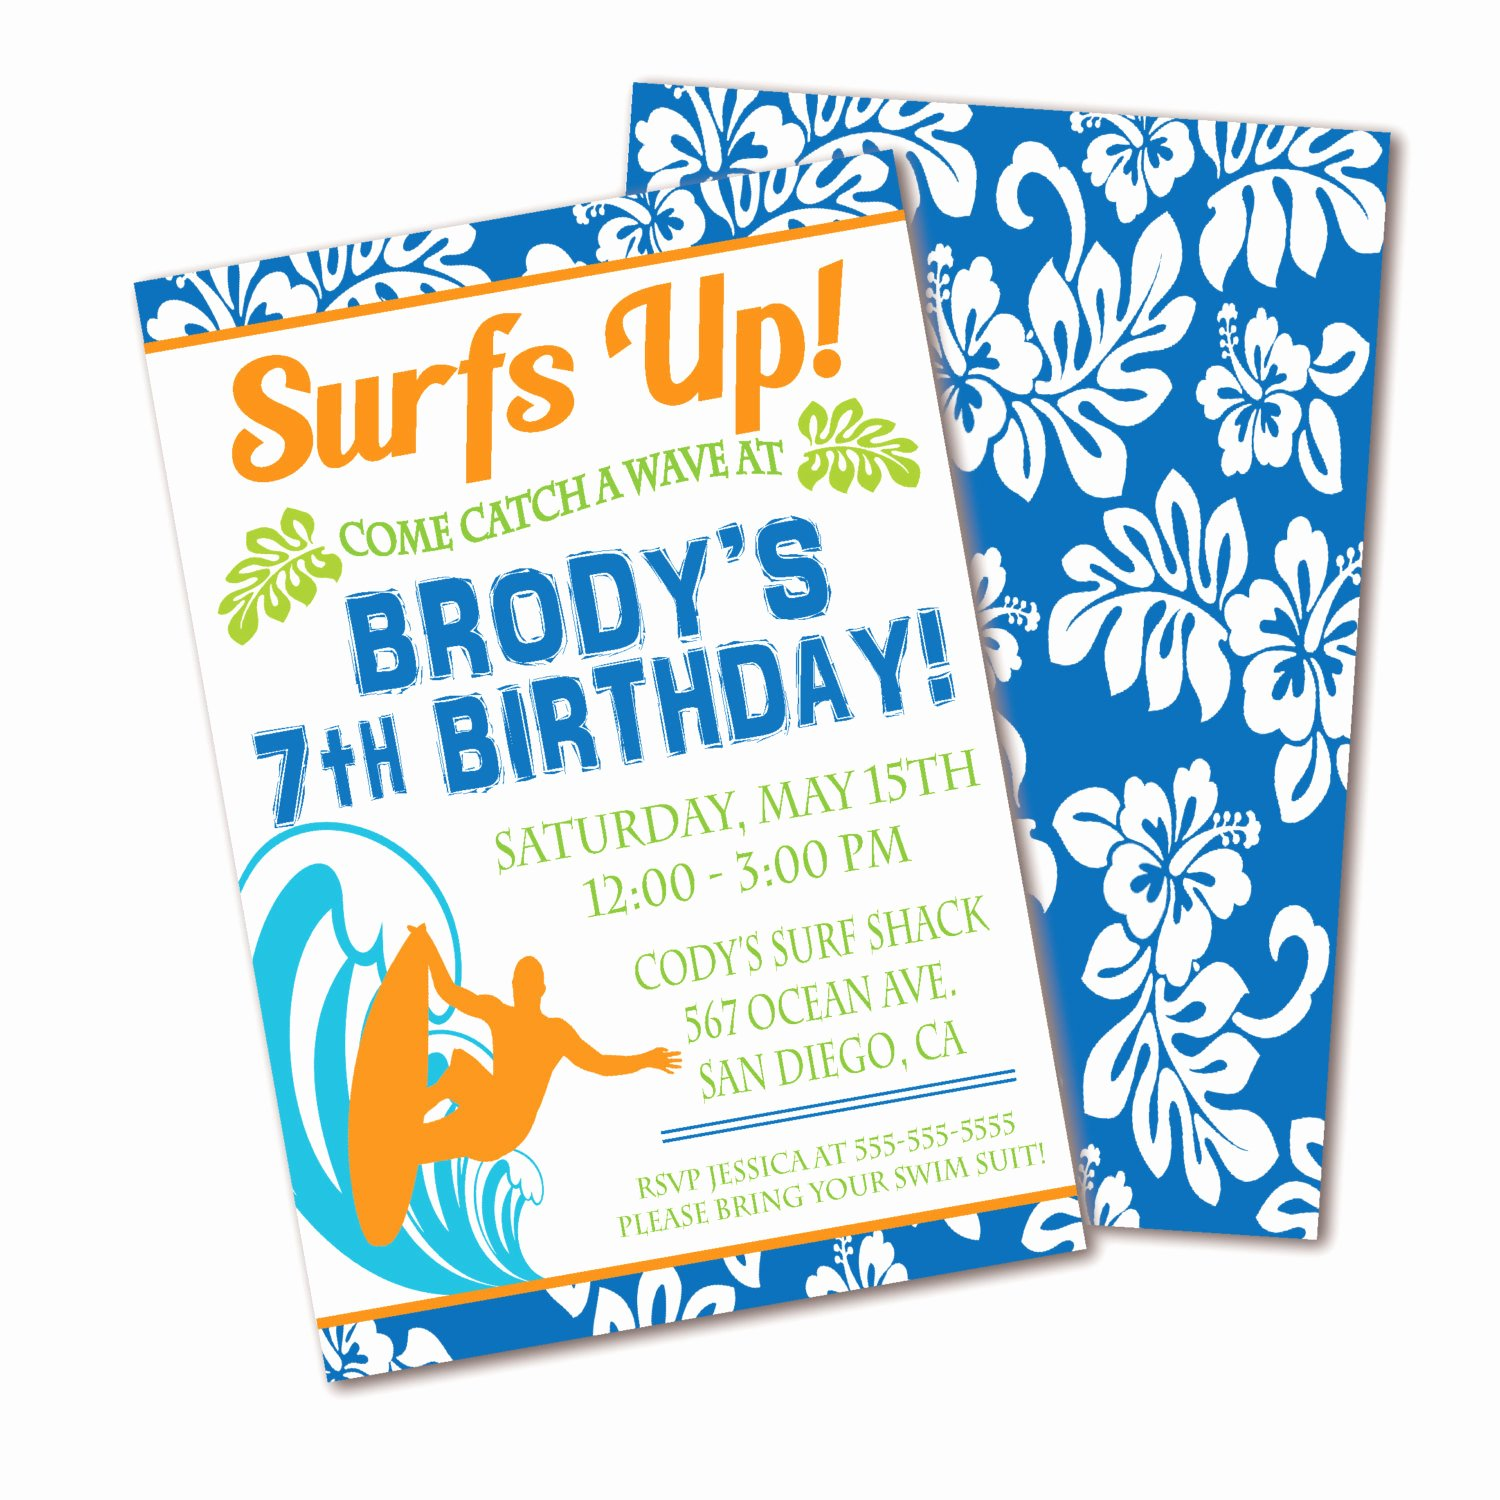 Beach Birthday Party Invitations Best Of Surf Birthday Invitation Beach Party Boys Birthday Party